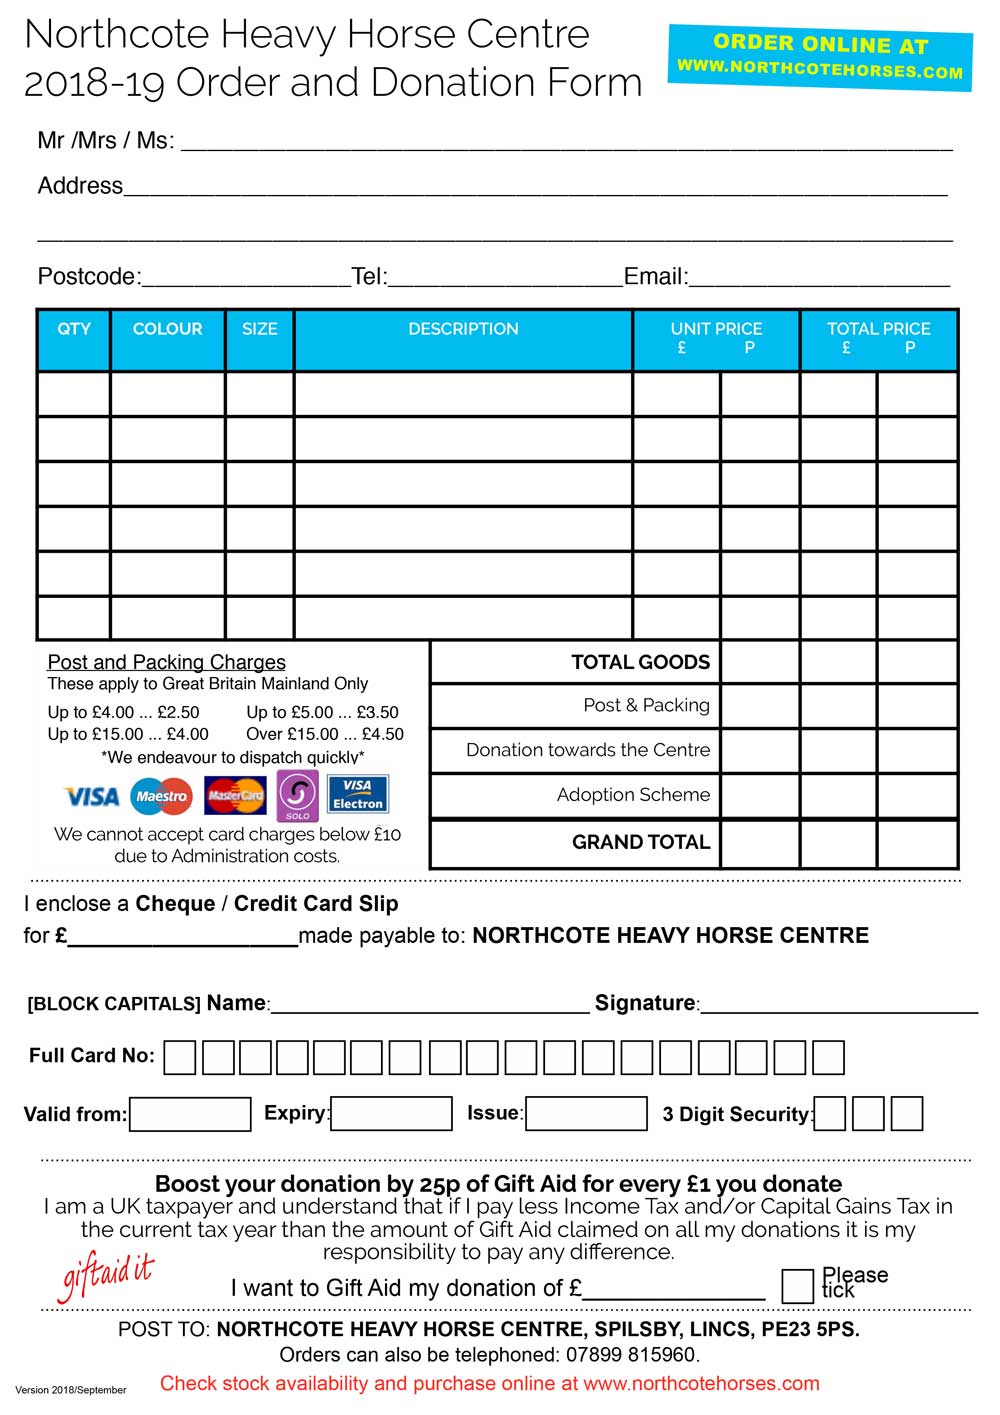 Gift selection & Donation Form (Including Gift Aid)